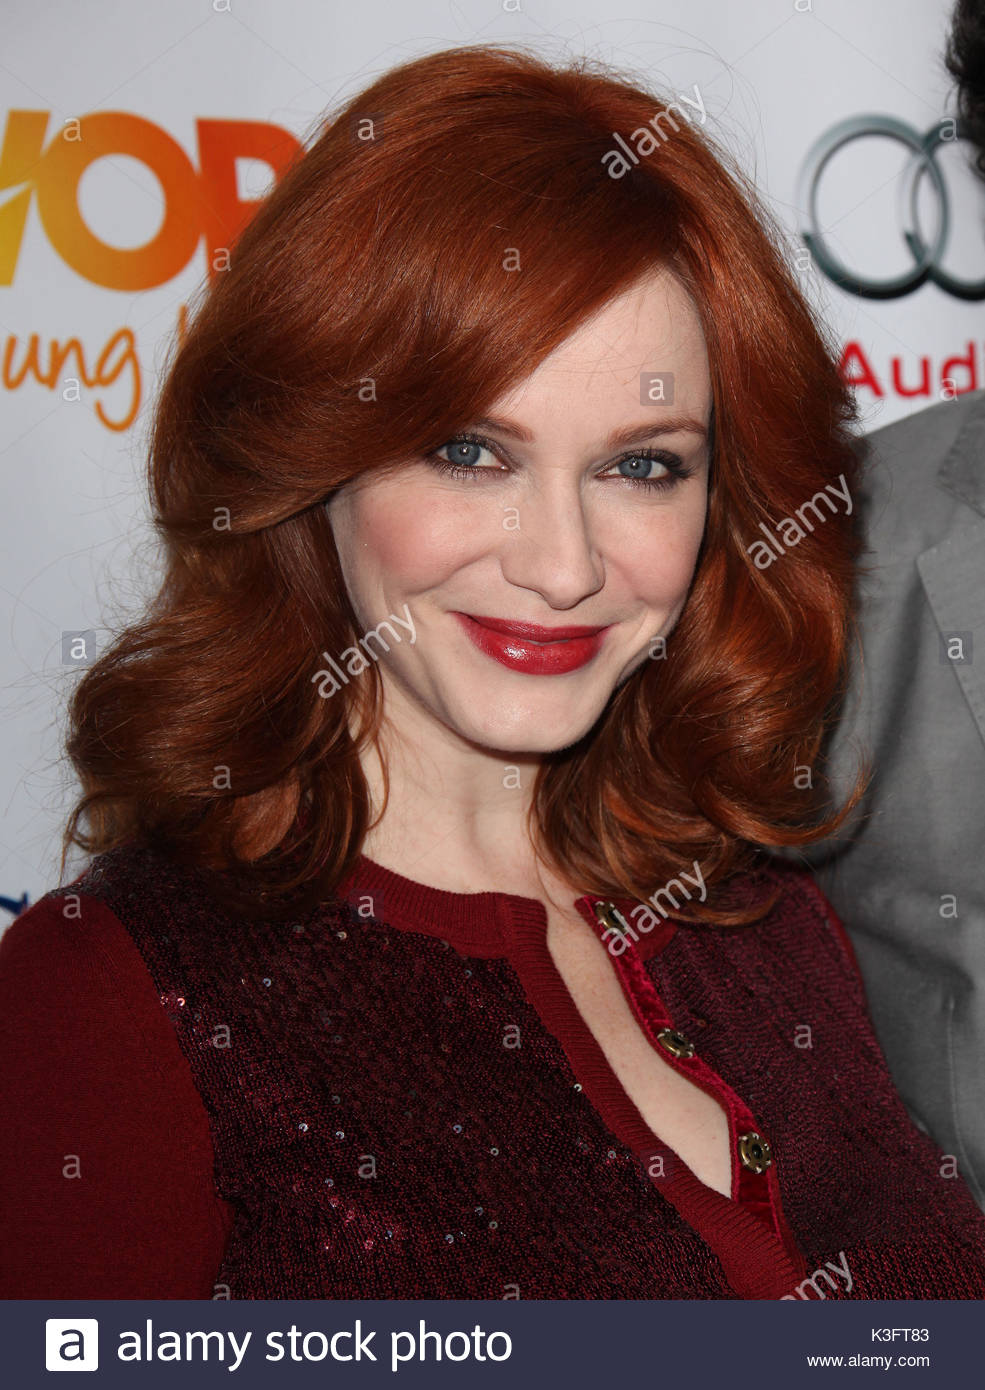 Christina Hendricks. Trevor Live at the Hollywood Palladium. - Stock Image